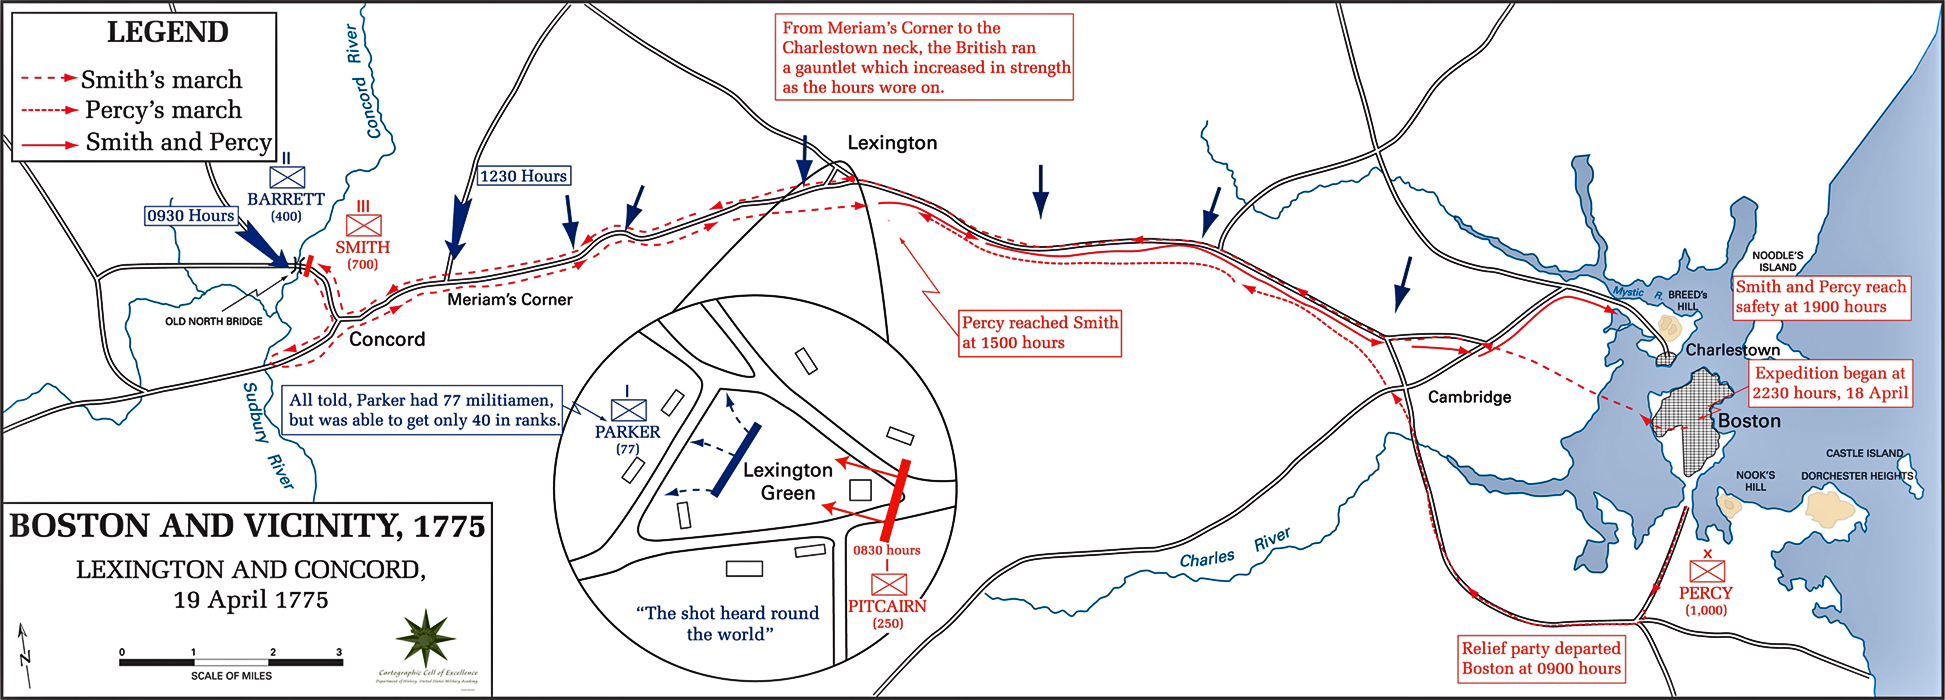 Map of the Battles of Lexington and Concord, April 19, 1775.